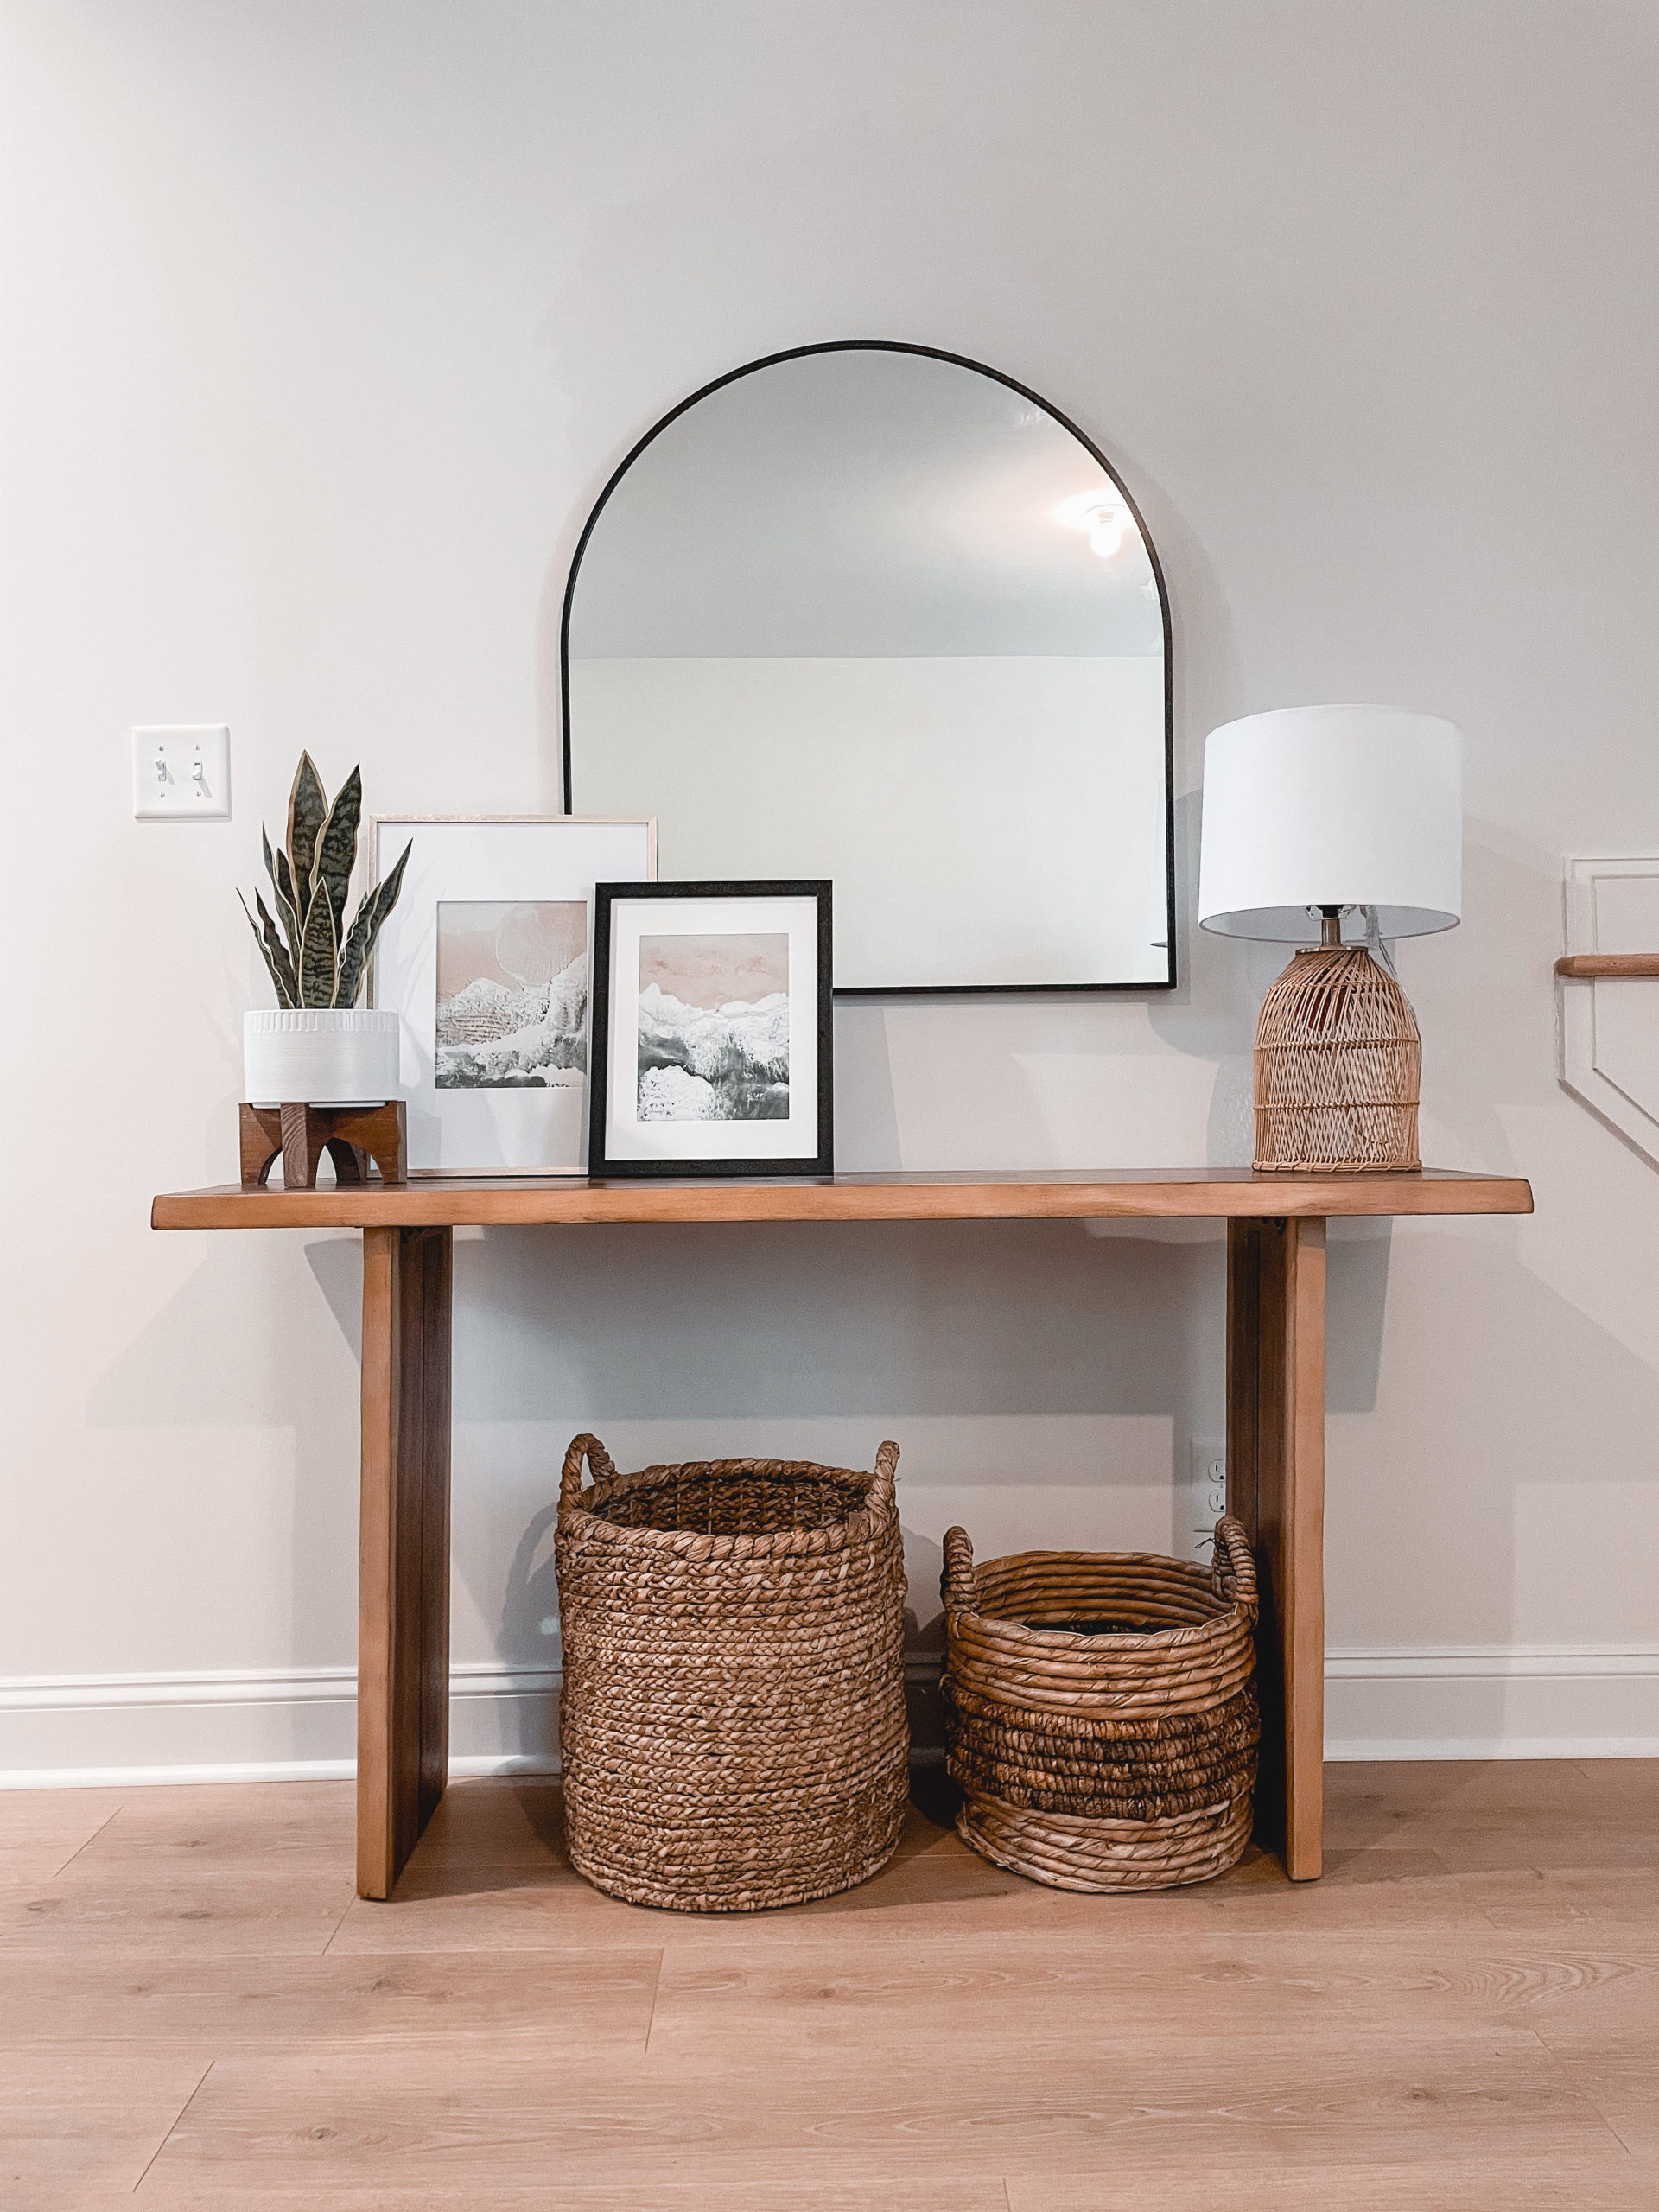 Virginia home blogger, Lauren Dix, shares her simple modern console table decor.